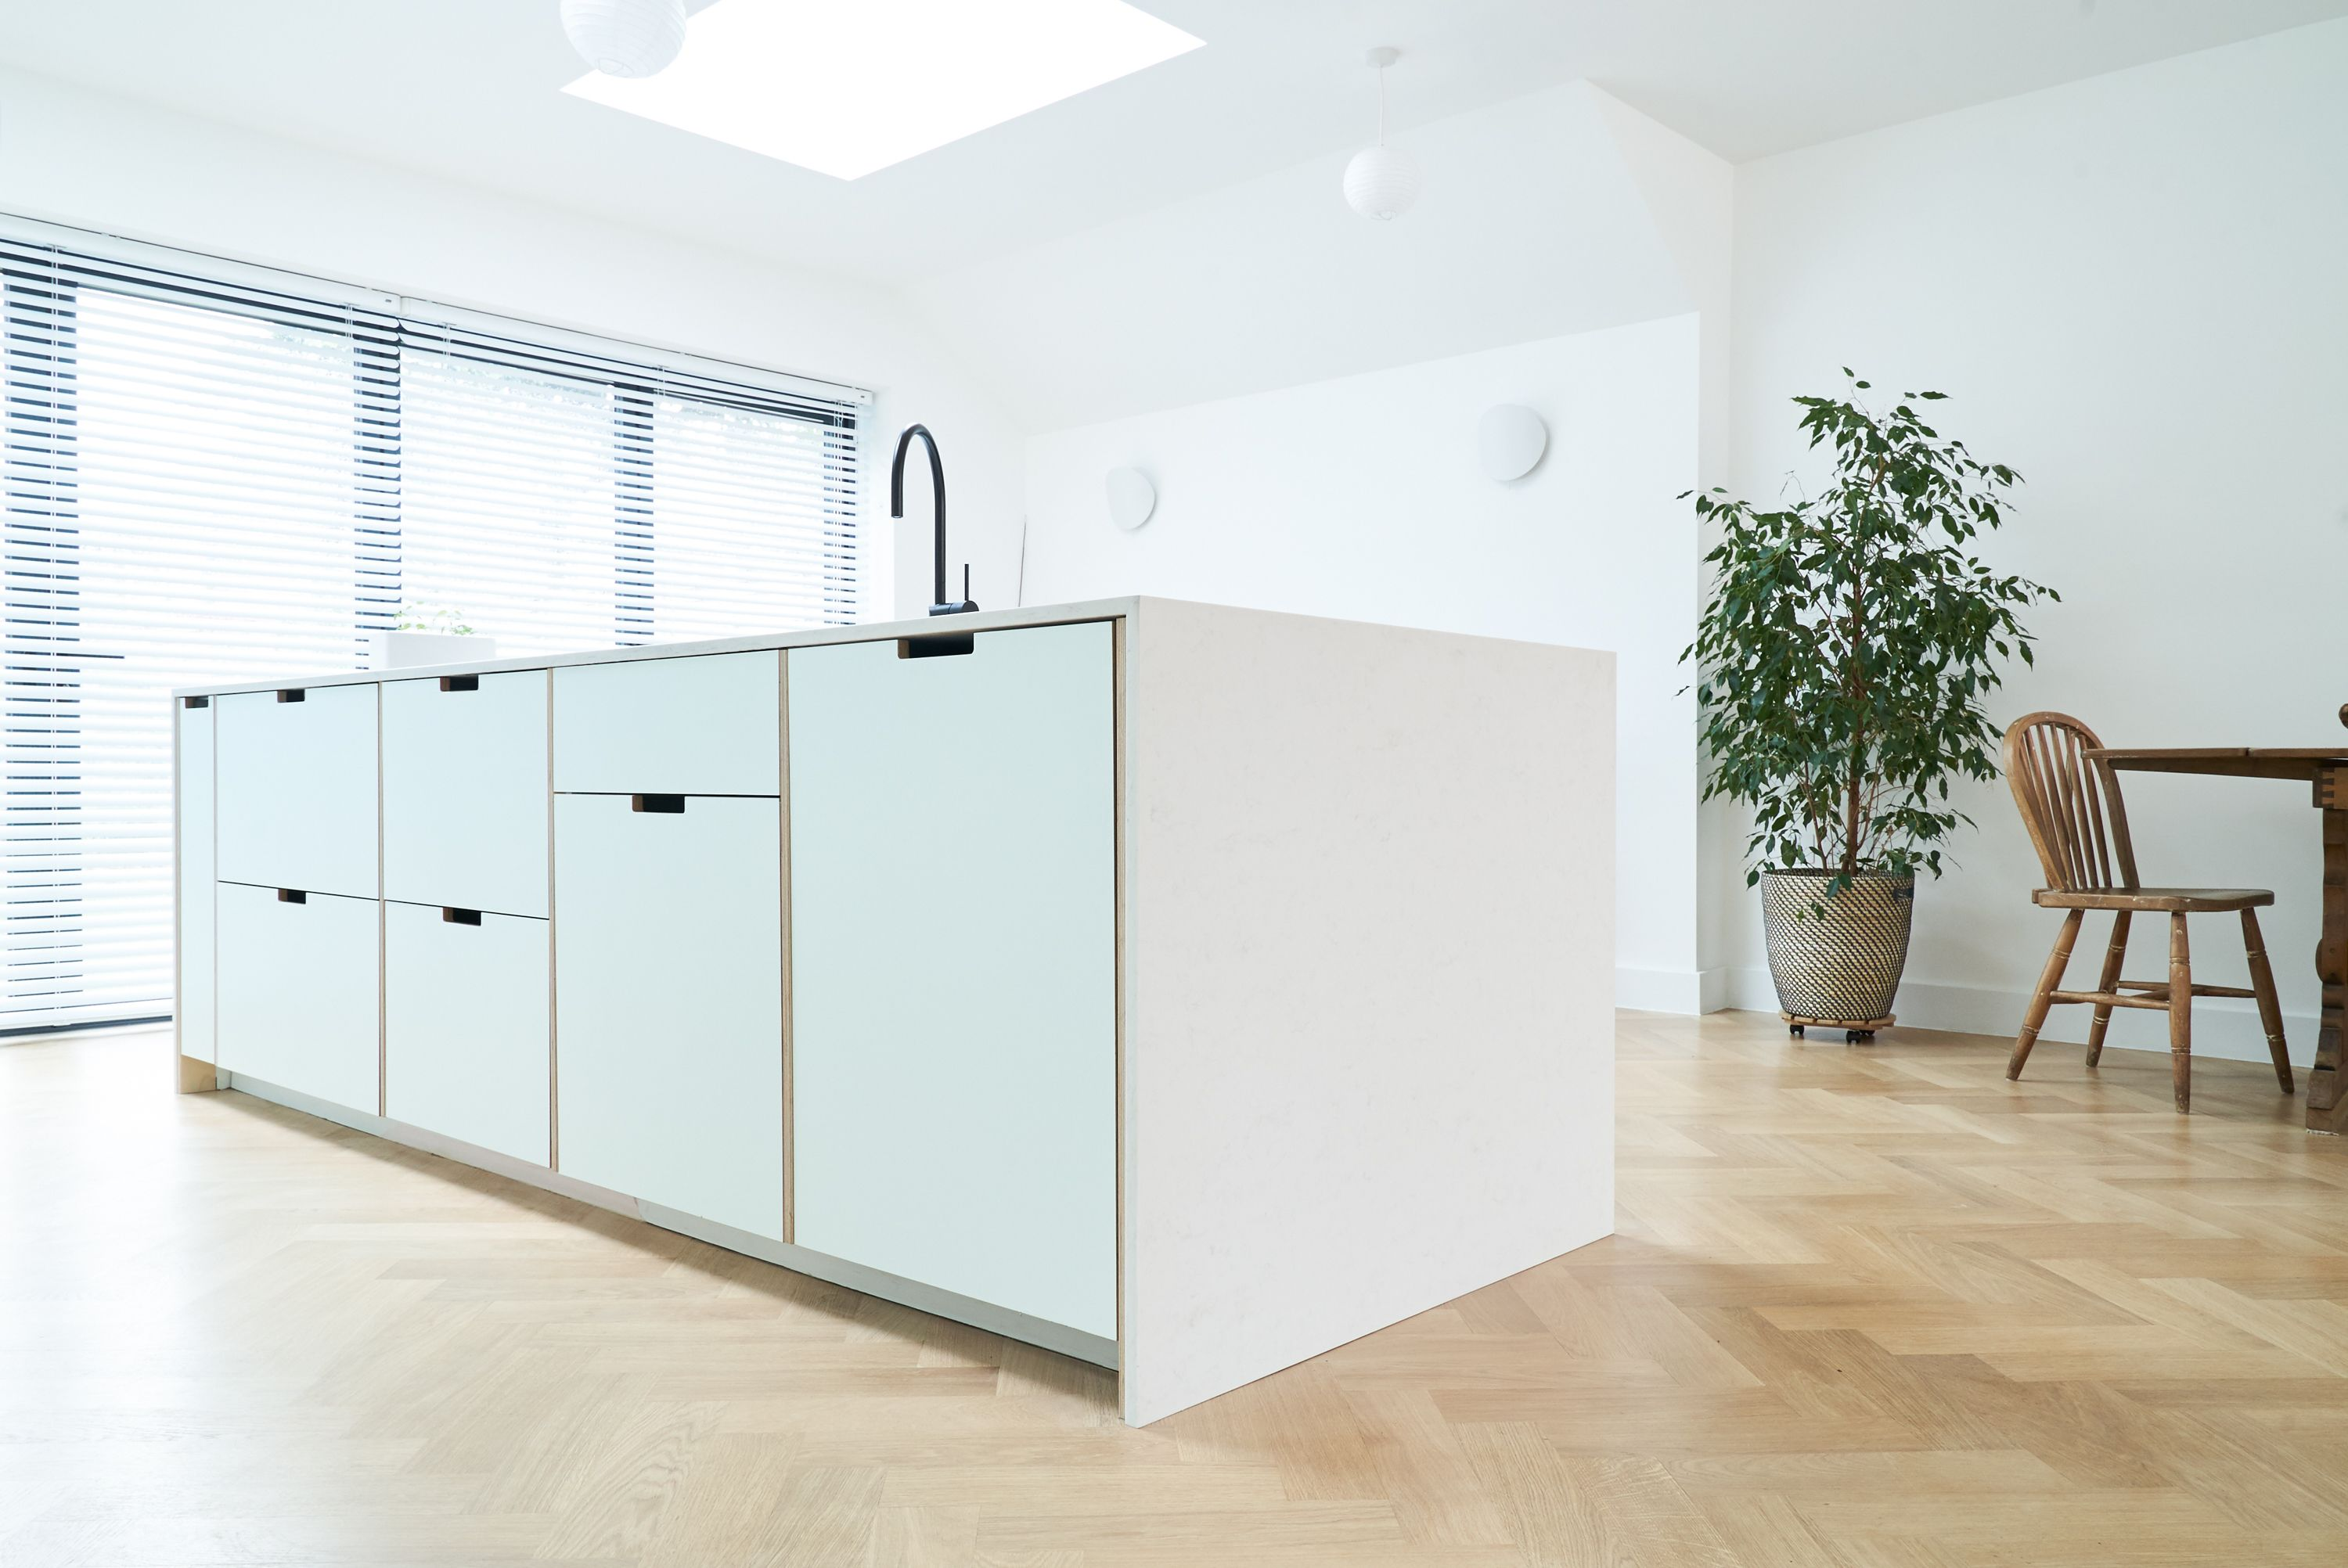 Plykea Kitchens Formica Faced Plywood Kitchen Using Ikea Base Units And Plykea Doors And Drawer Fronts Plywood Kitchen Ikea Kitchen Kitchen Plans